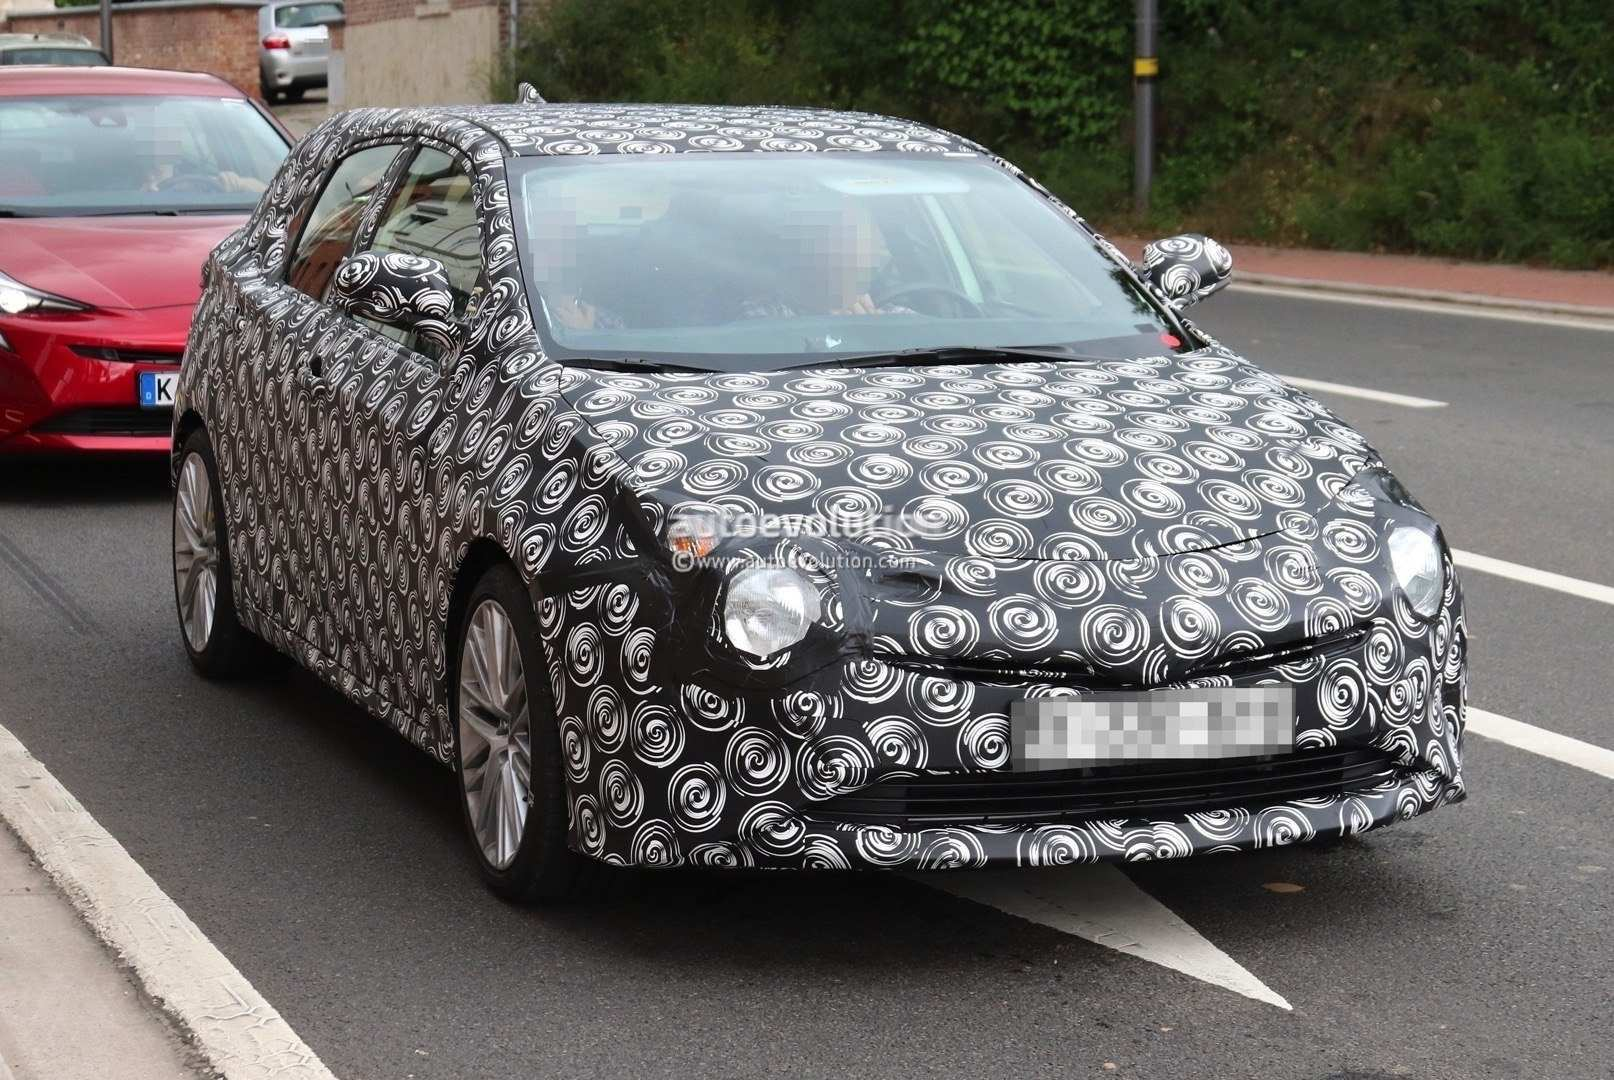 82 All New 2019 New Toyota Avensis Spy Shots Price And Release Date